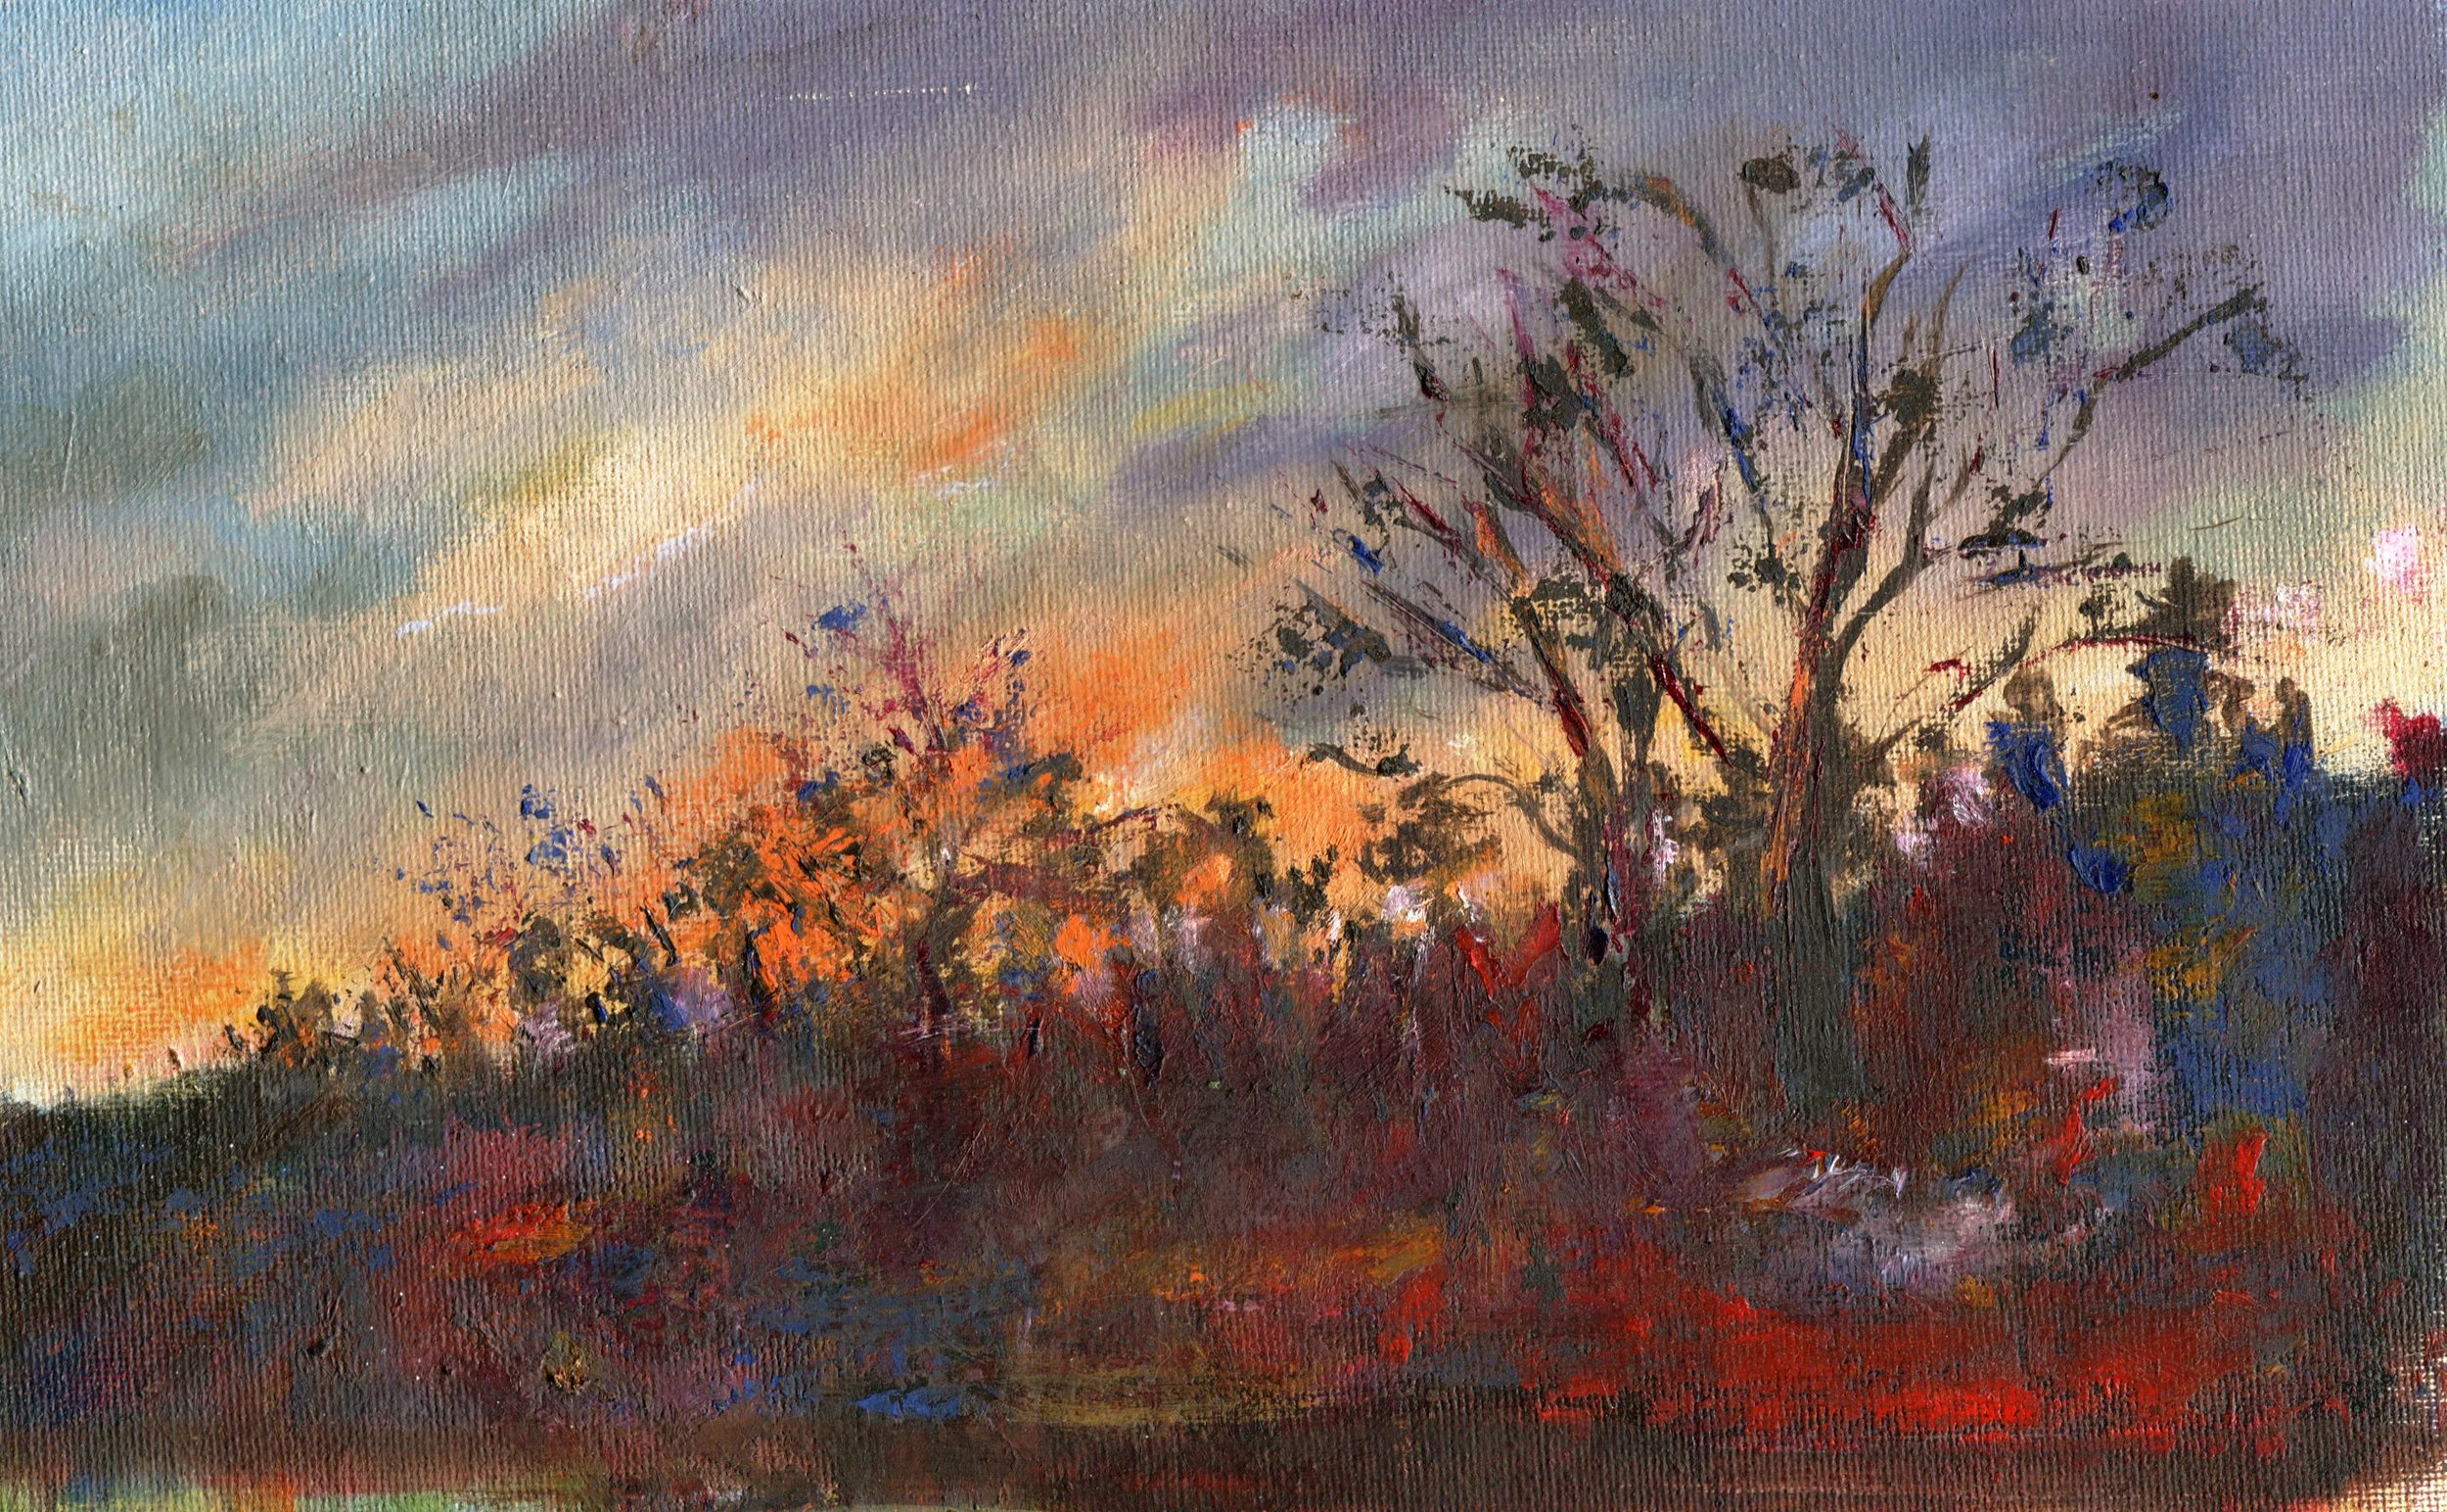 63C VICKY CRESSEY, FIERY EVENING, OIL ON CANVAS